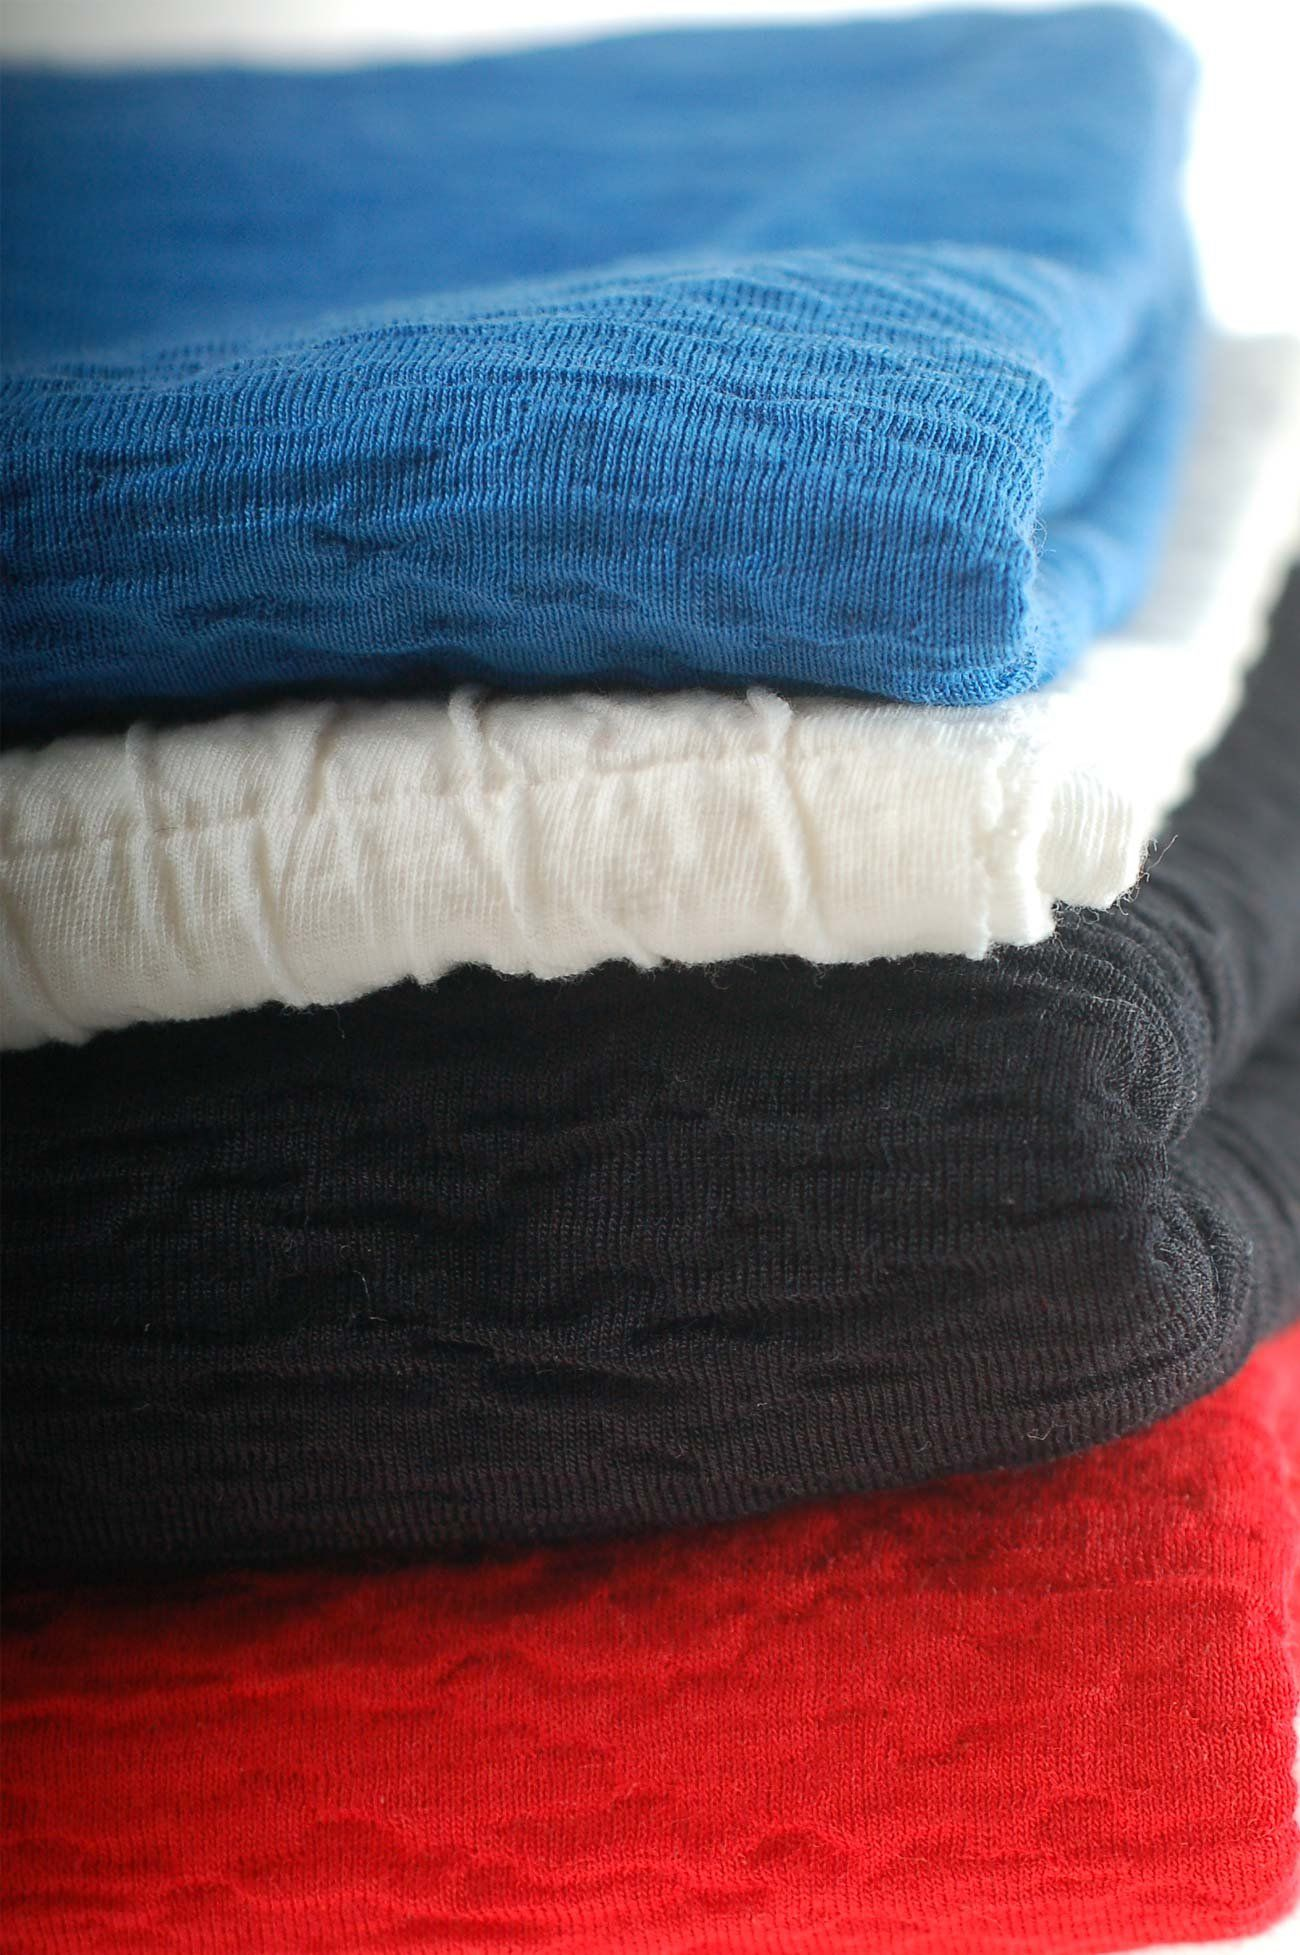 9eed297eea9 Neotrims Seersucker Crinkle Stretch Knit Rib Jersey Fabric for T-Shirts,  Tops, Crafts & Home Décor. Limited Edition in Royal Blue, Black, Off-White  & Red.